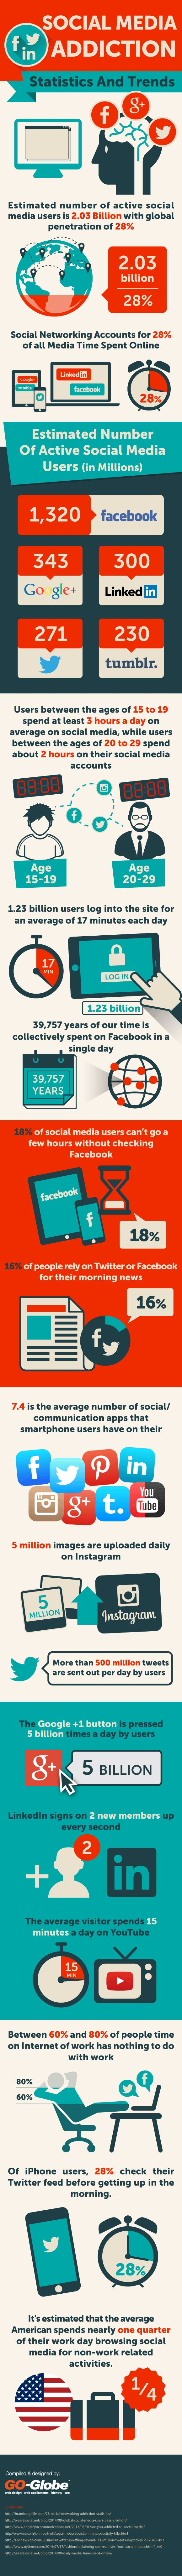 #SocialMedia Addiction – Statistics and Trends - #infographic